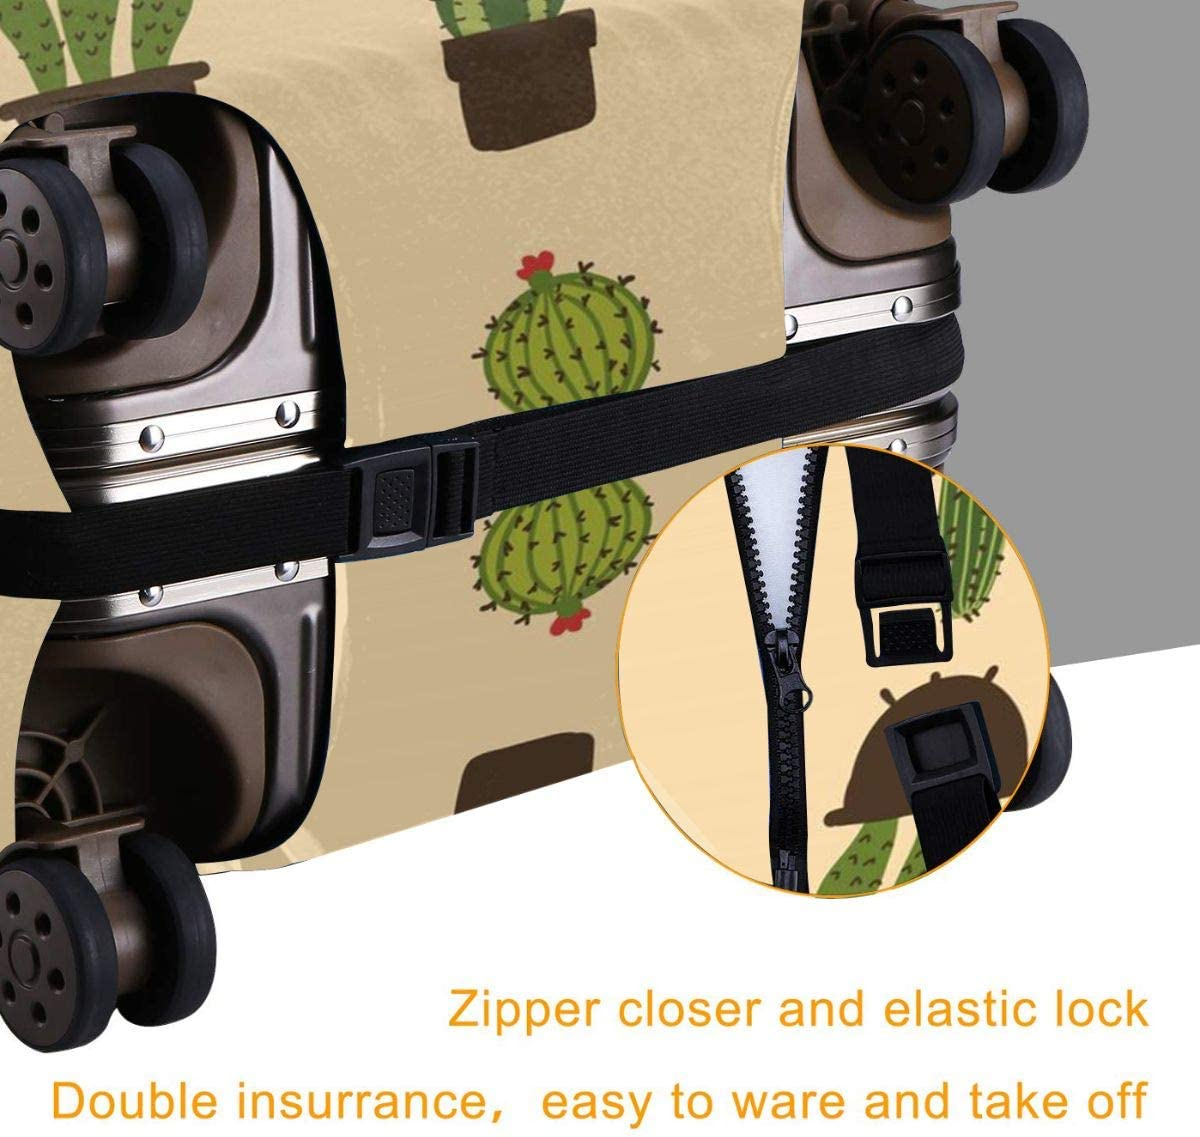 Cactus Potted Plant Zipper Suitcase Protector Luggage with Fixed Buckle Fits 18-32 Inch Luggage XL Yuotry Travel Luggage Cover